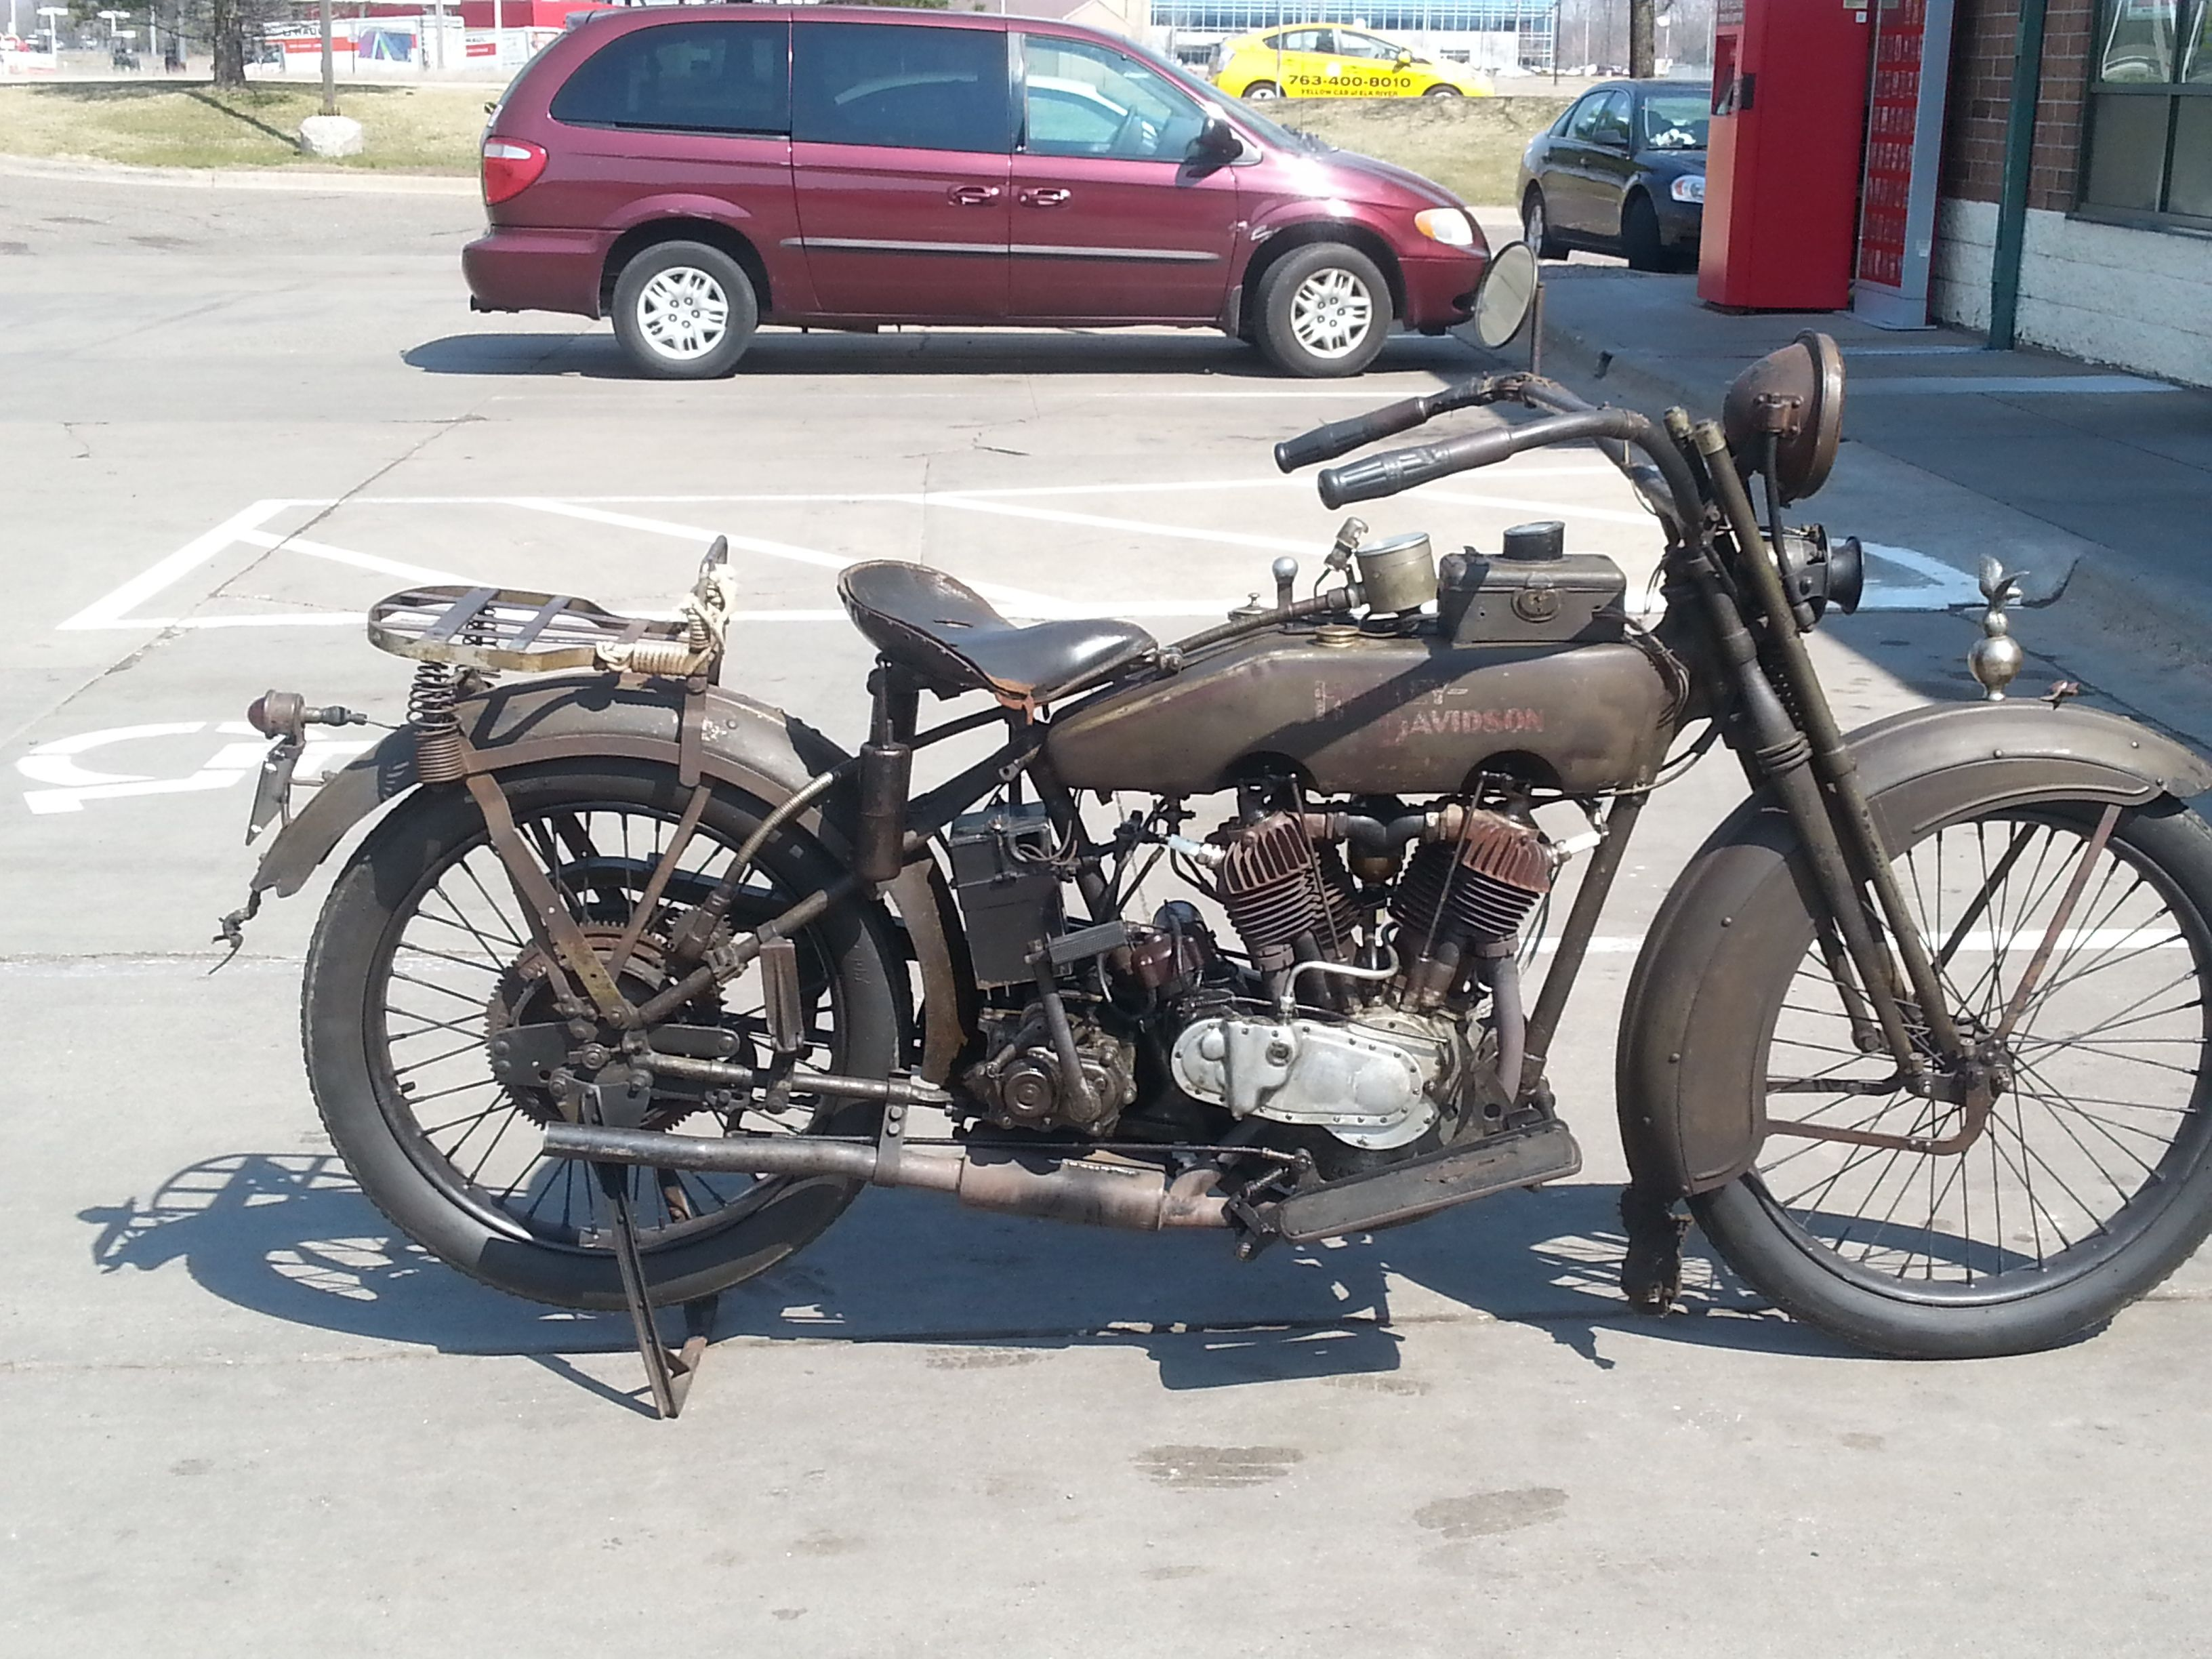 It must be spring in minnesota a 1922 harley davidson out in the wild